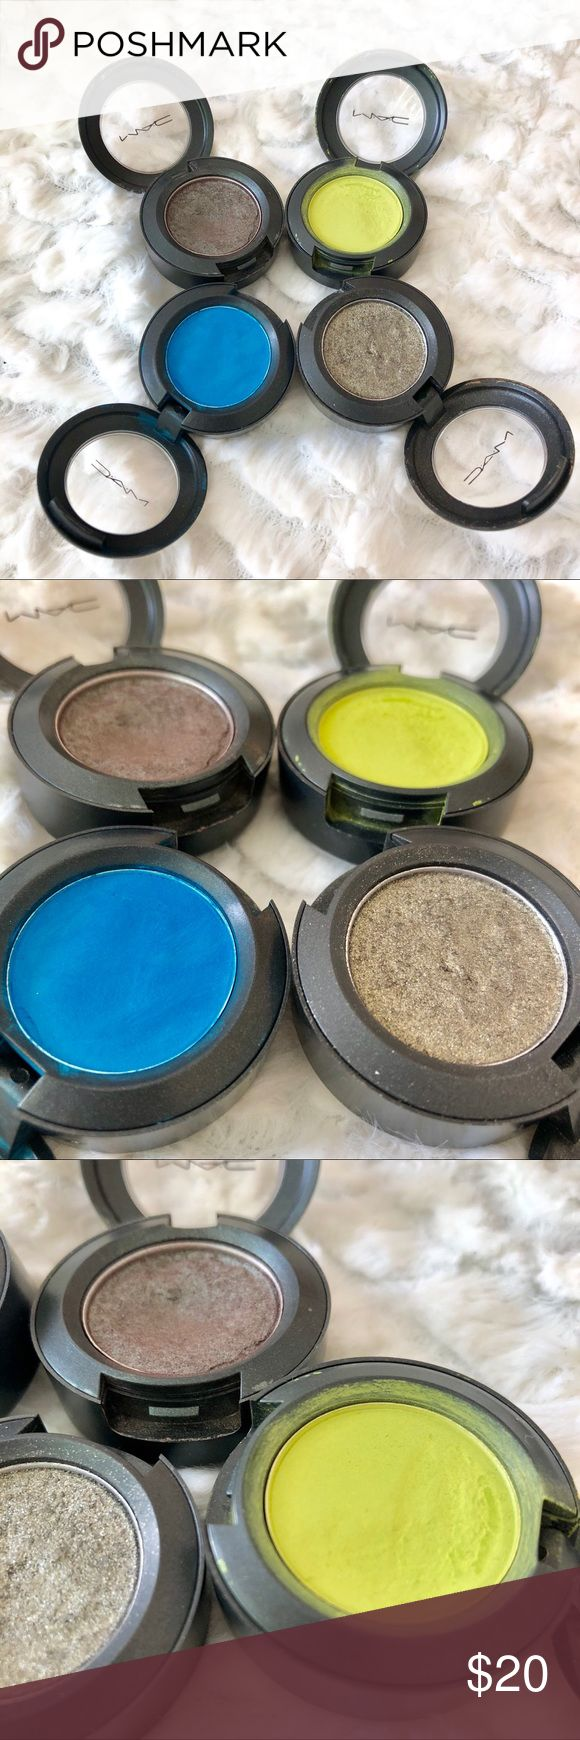 MAC Eyeshadow Lot of 4 MAC Eyeshadow• Electric Eel-Satin•Bitter-Velvet•Green Smoke-Lustre•Club-Satin• All eyeshadows are from my collection and have been used, please see all pictures. MAC Cosmetics Makeup Eyeshadow